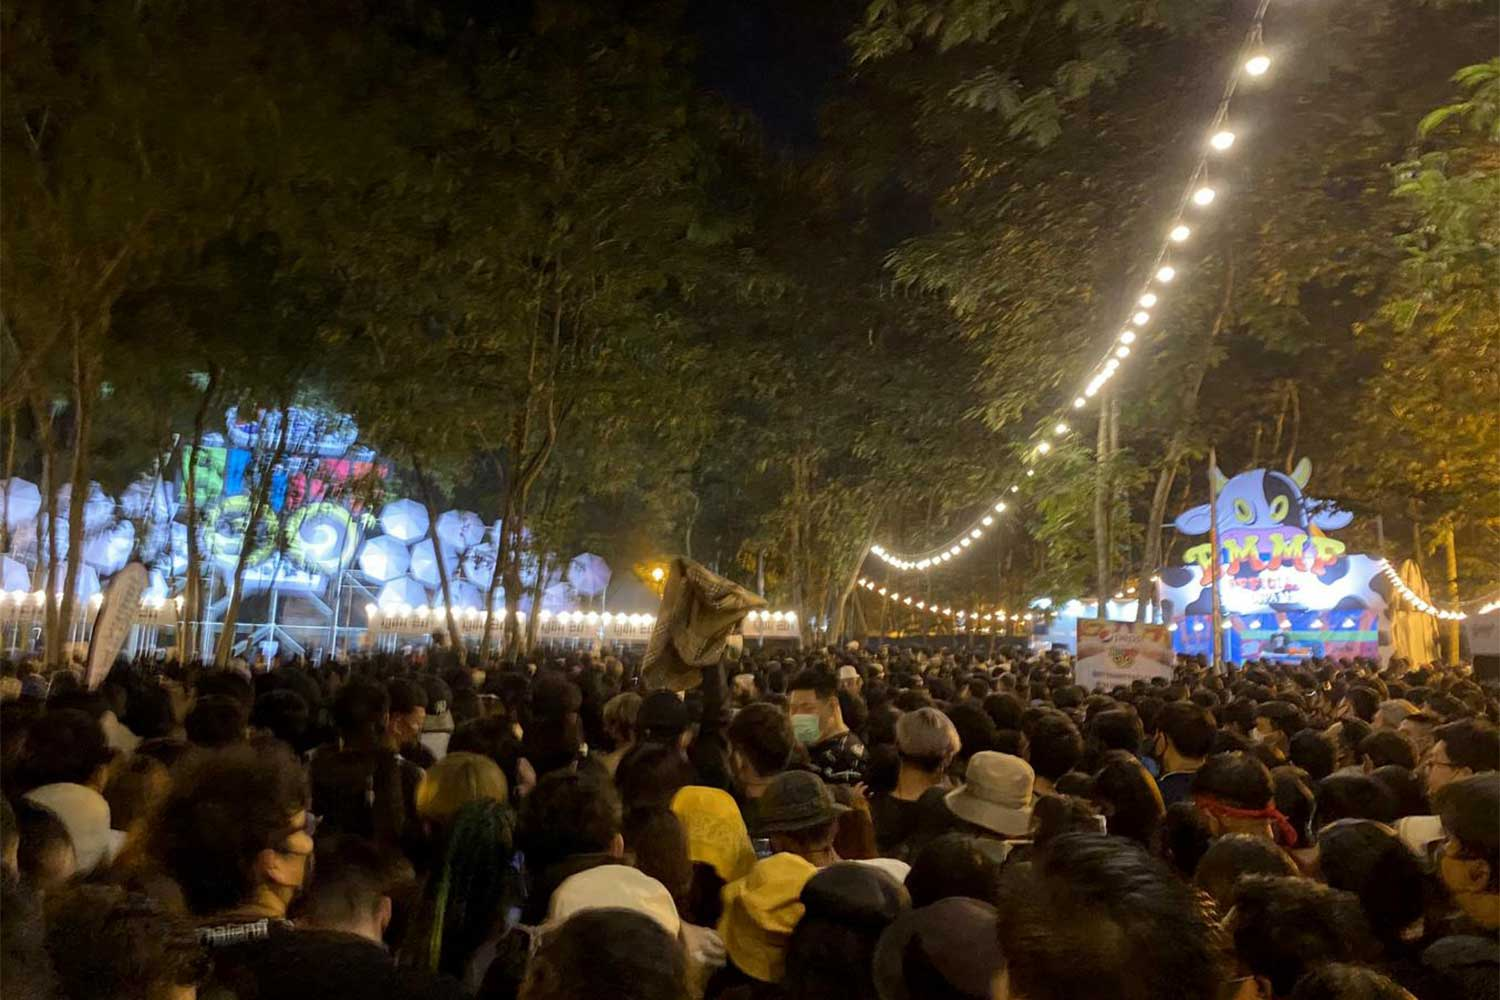 Concert-goers crowd the Big Mountain Music Festival in Pak Chong district of Nakhon Ratchasima on Saturday. (Photo from@paiyoonaima Twitter account)